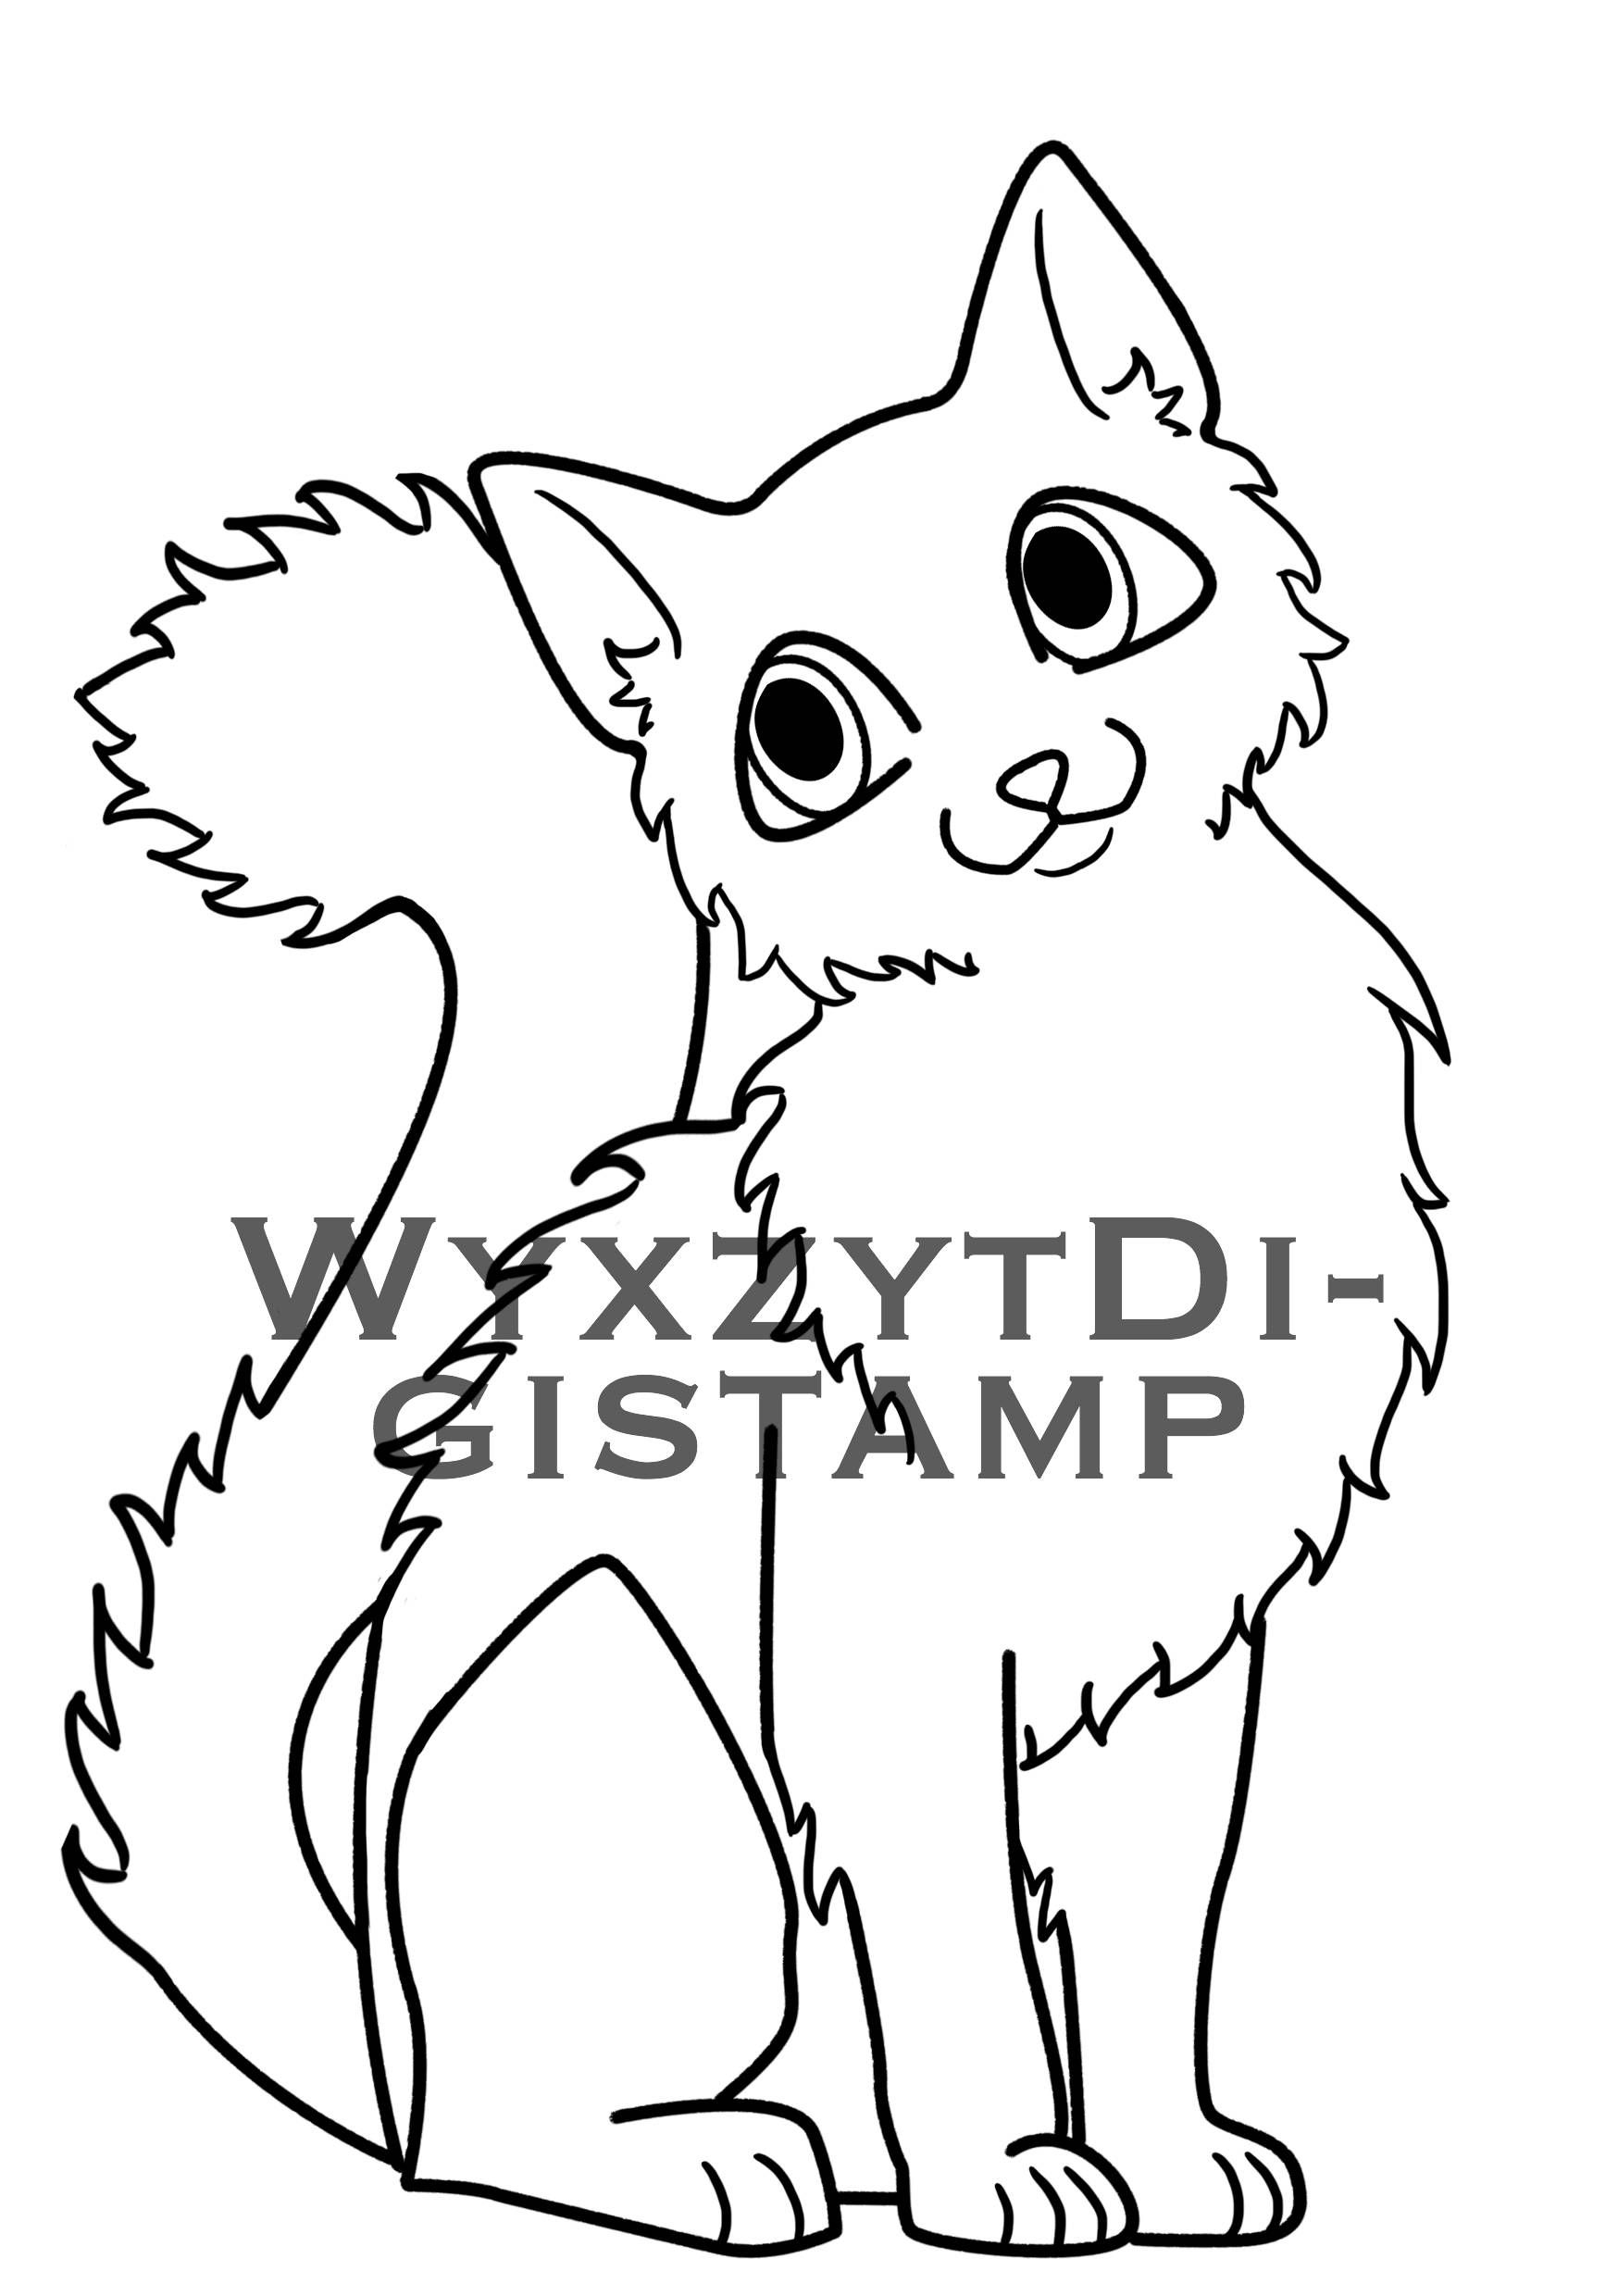 Cute fluffy cat digistamp, instant download coloring page